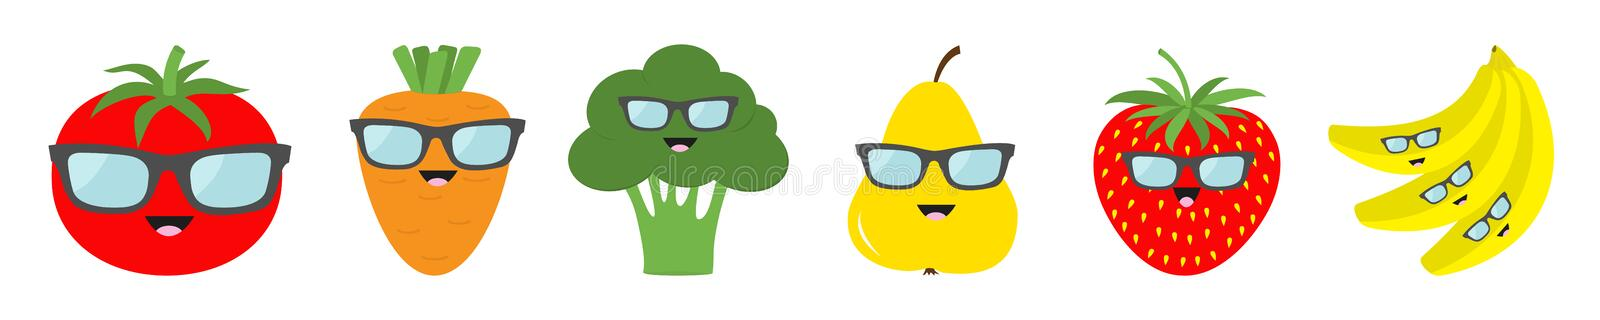 Fruit berry vegetable face sunglasses icon set line. Pear strawberry banana,Tomato, carrot broccoli. Cute cartoon kawaii character royalty free illustration